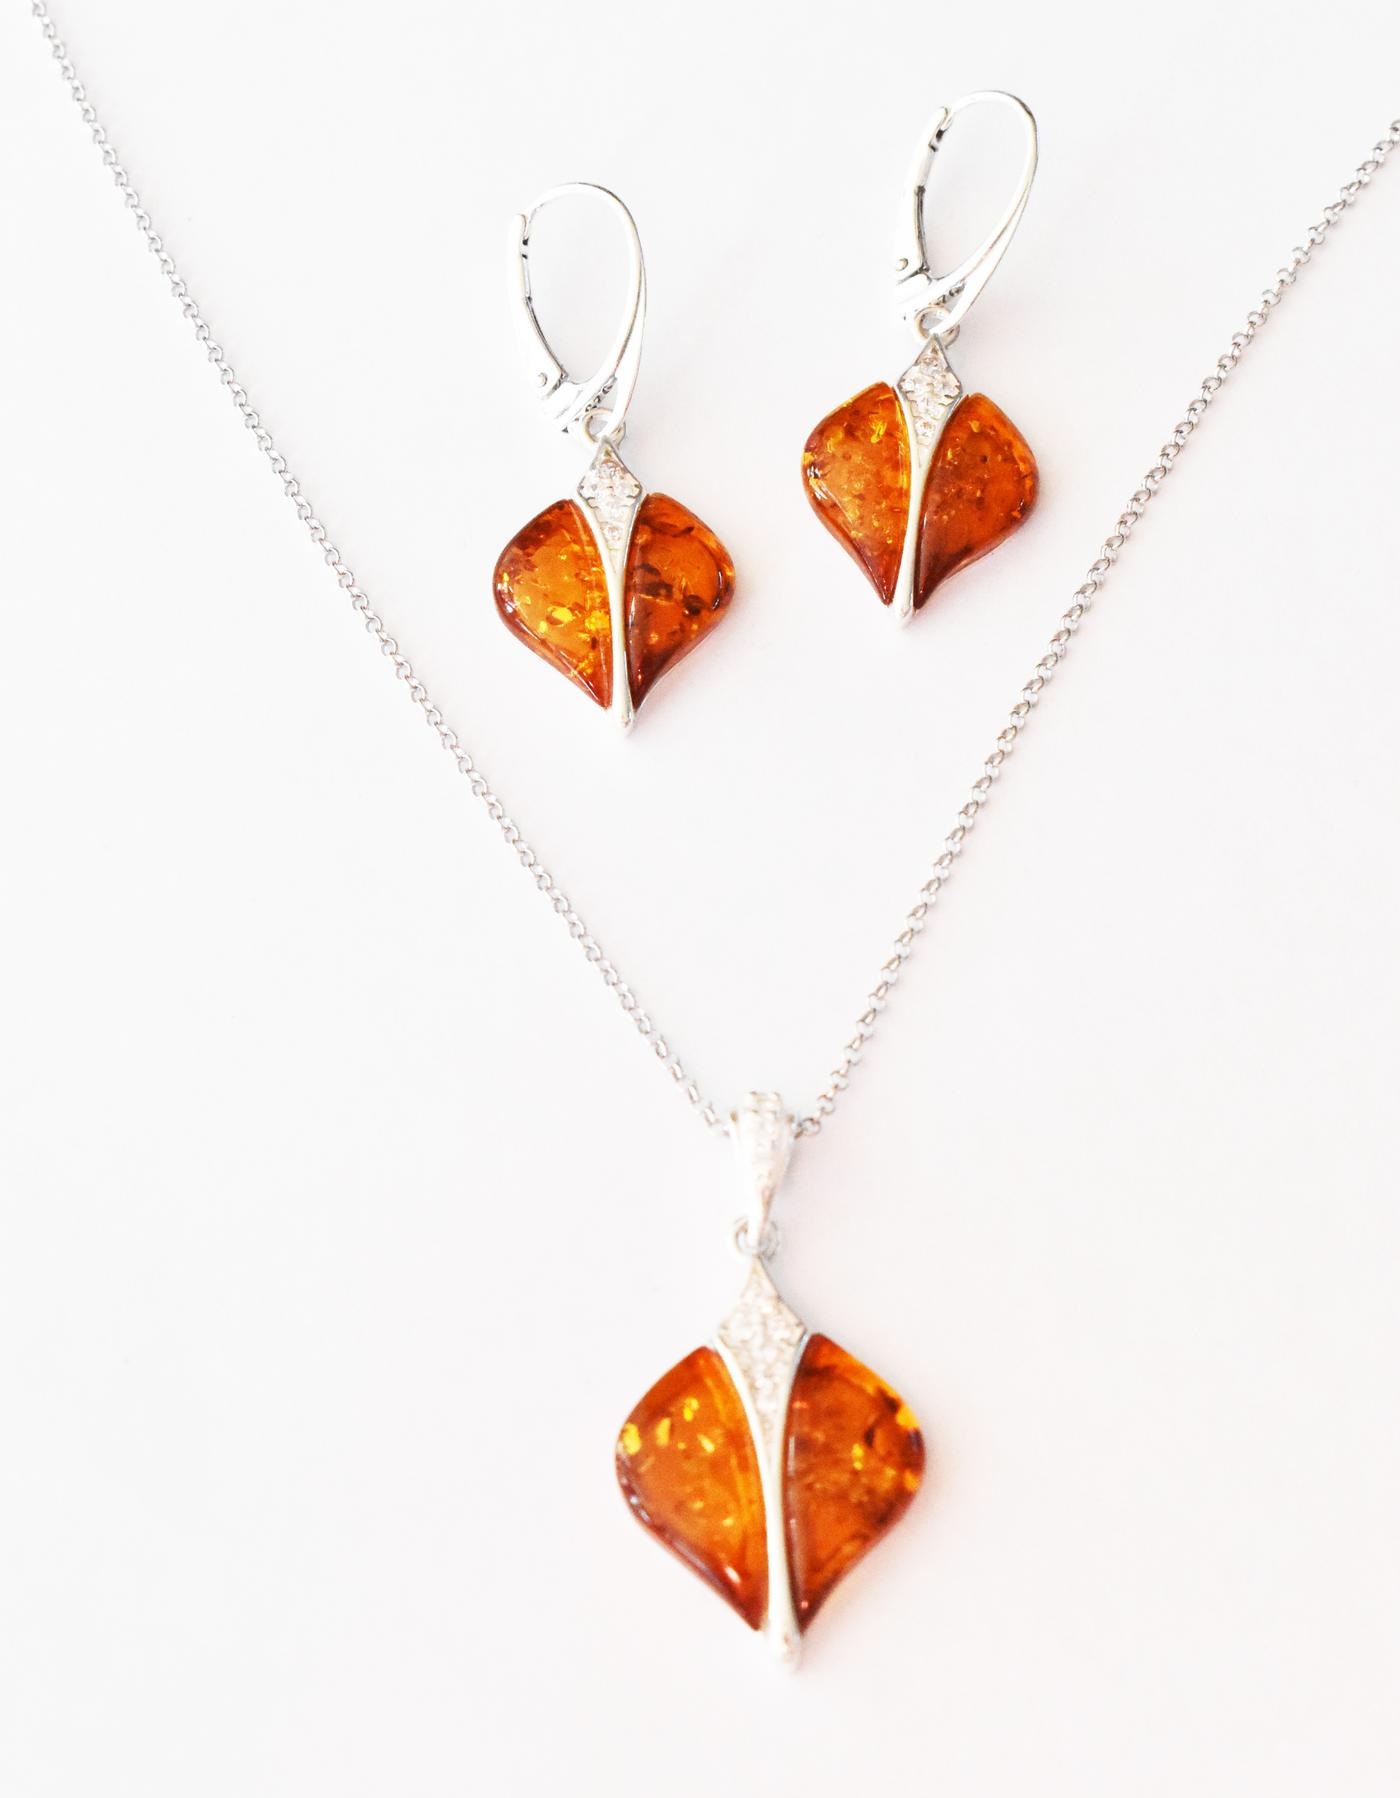 Matching Baltic amber earrings and pendant  (EP-02)